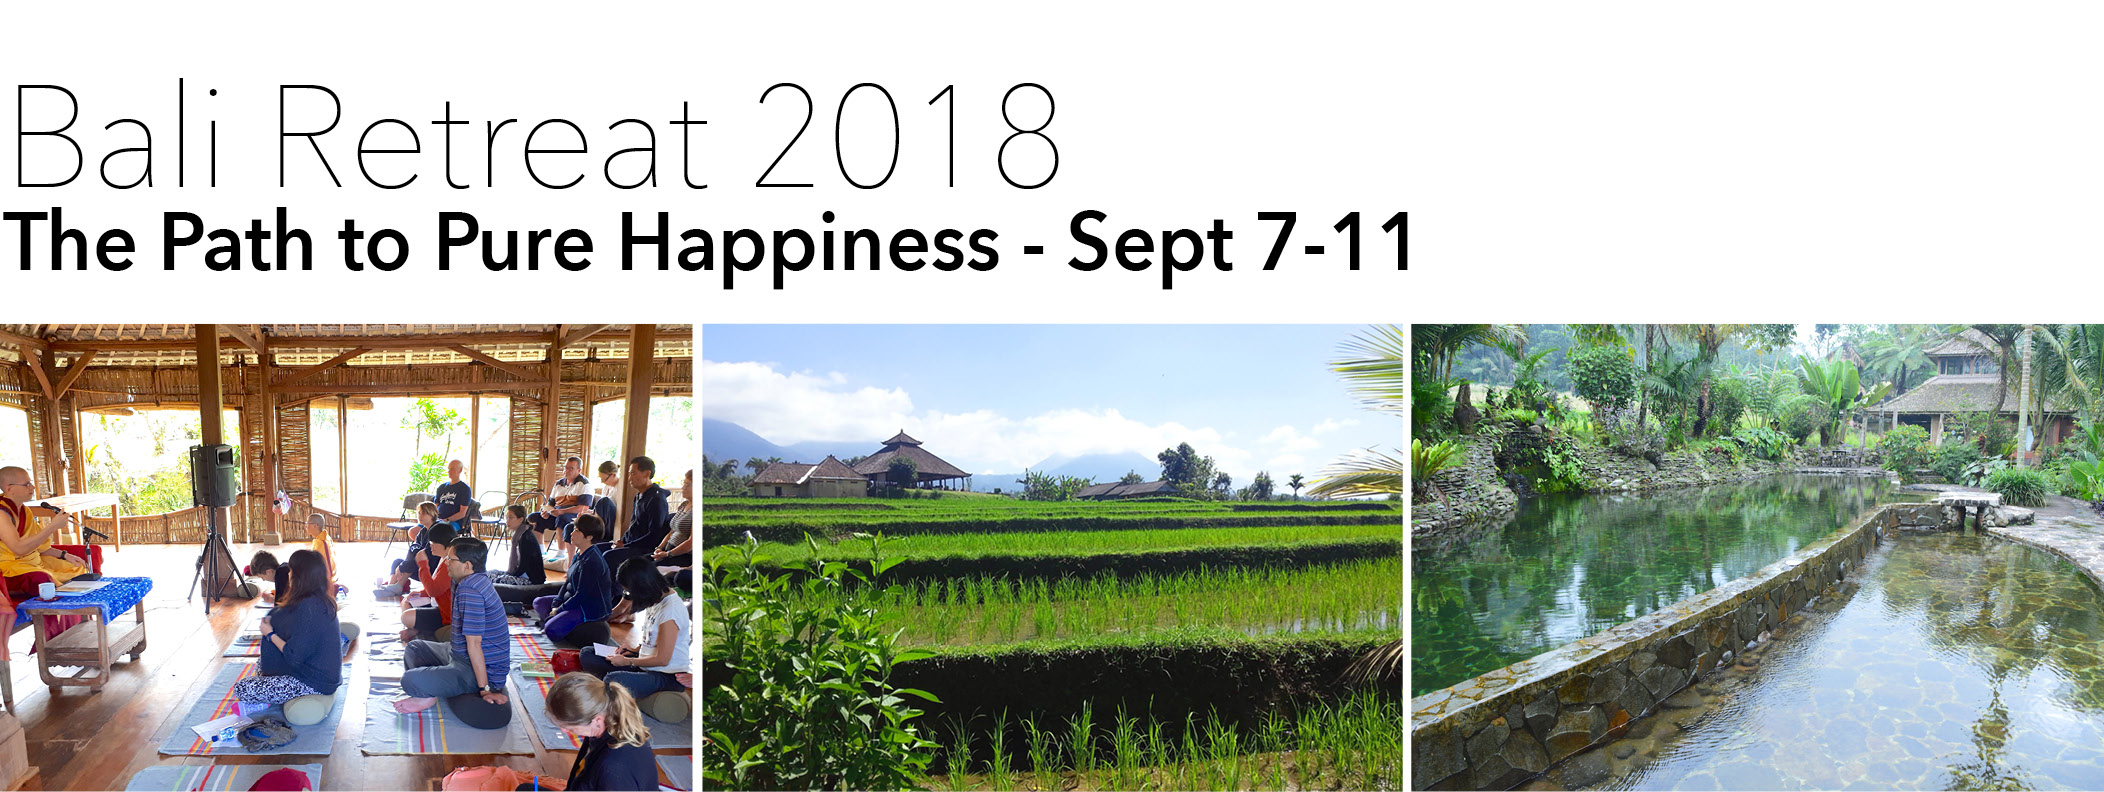 Bali Retreat 2018